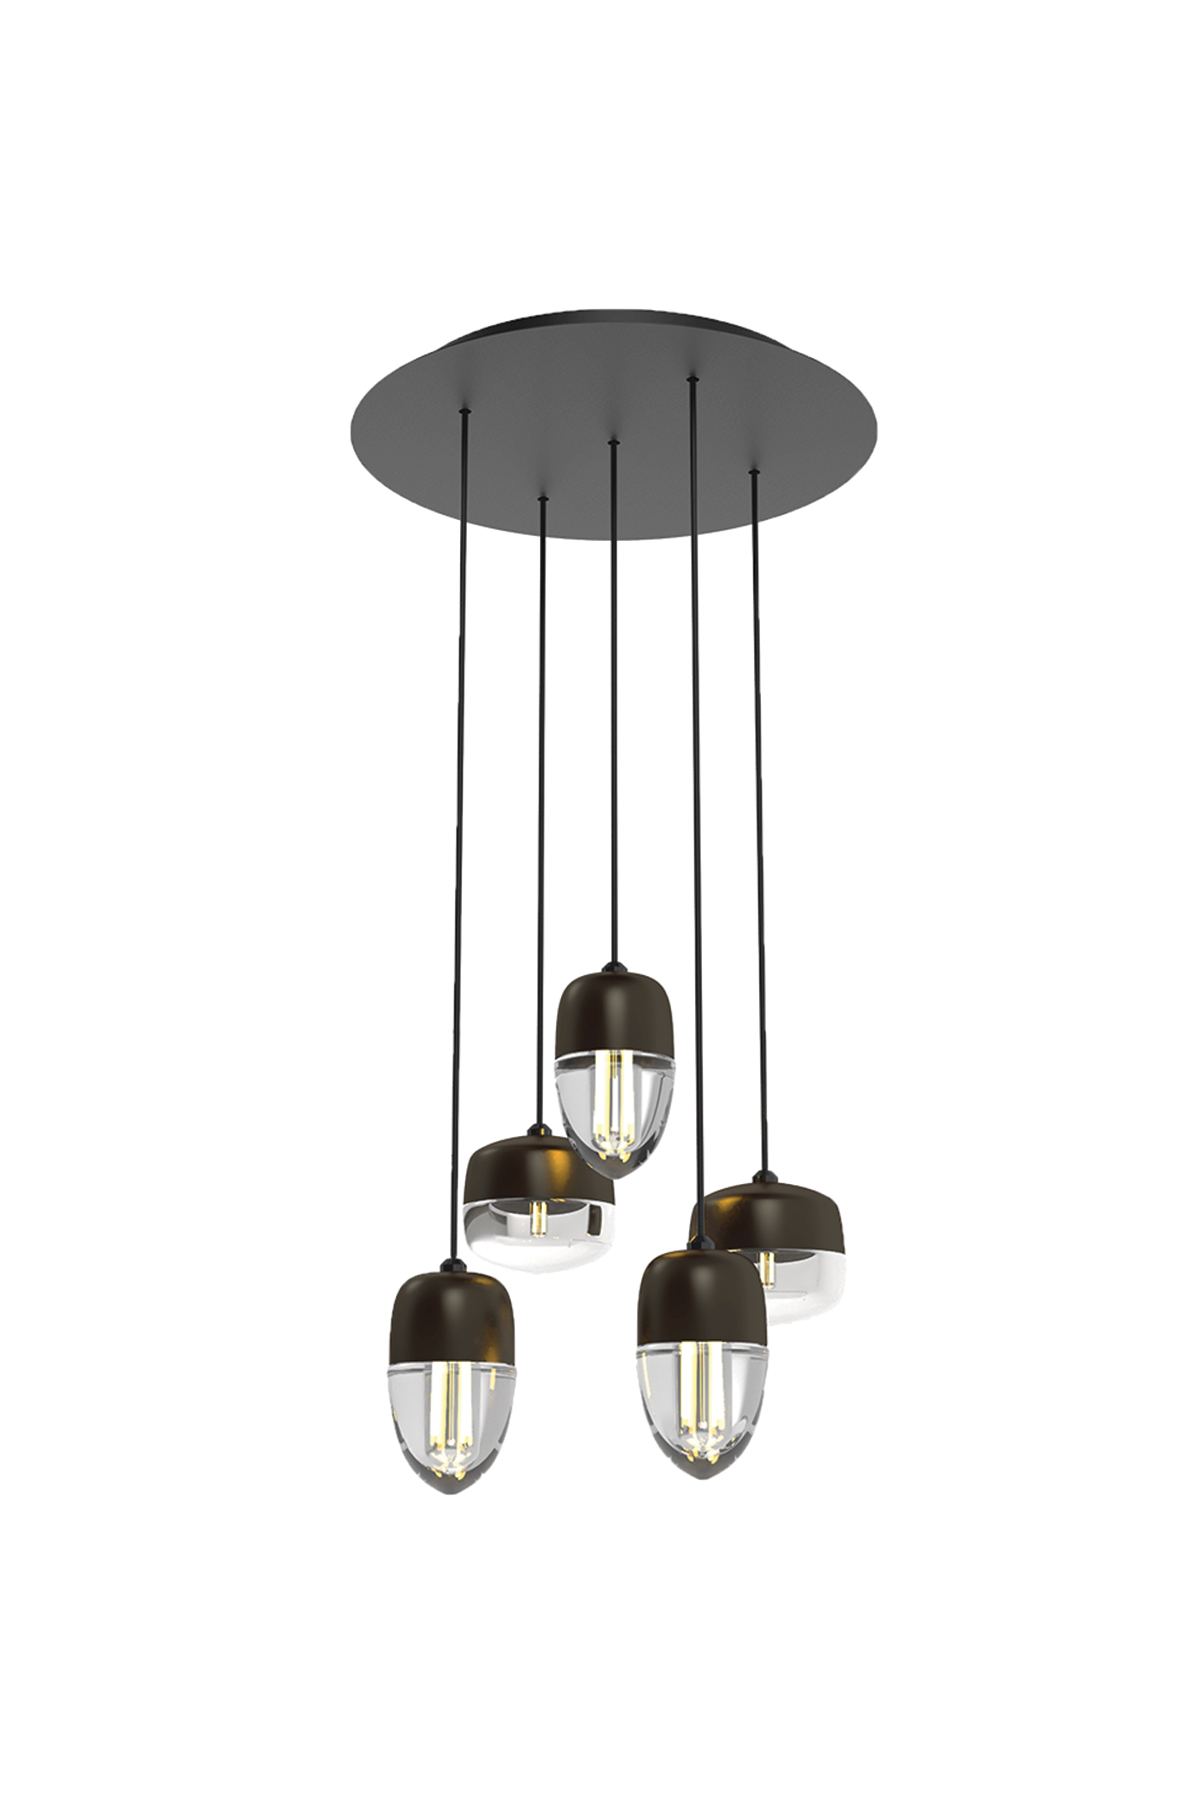 5 Light Round Multi-Pendant Canopy - Product Spec Sheet ↓